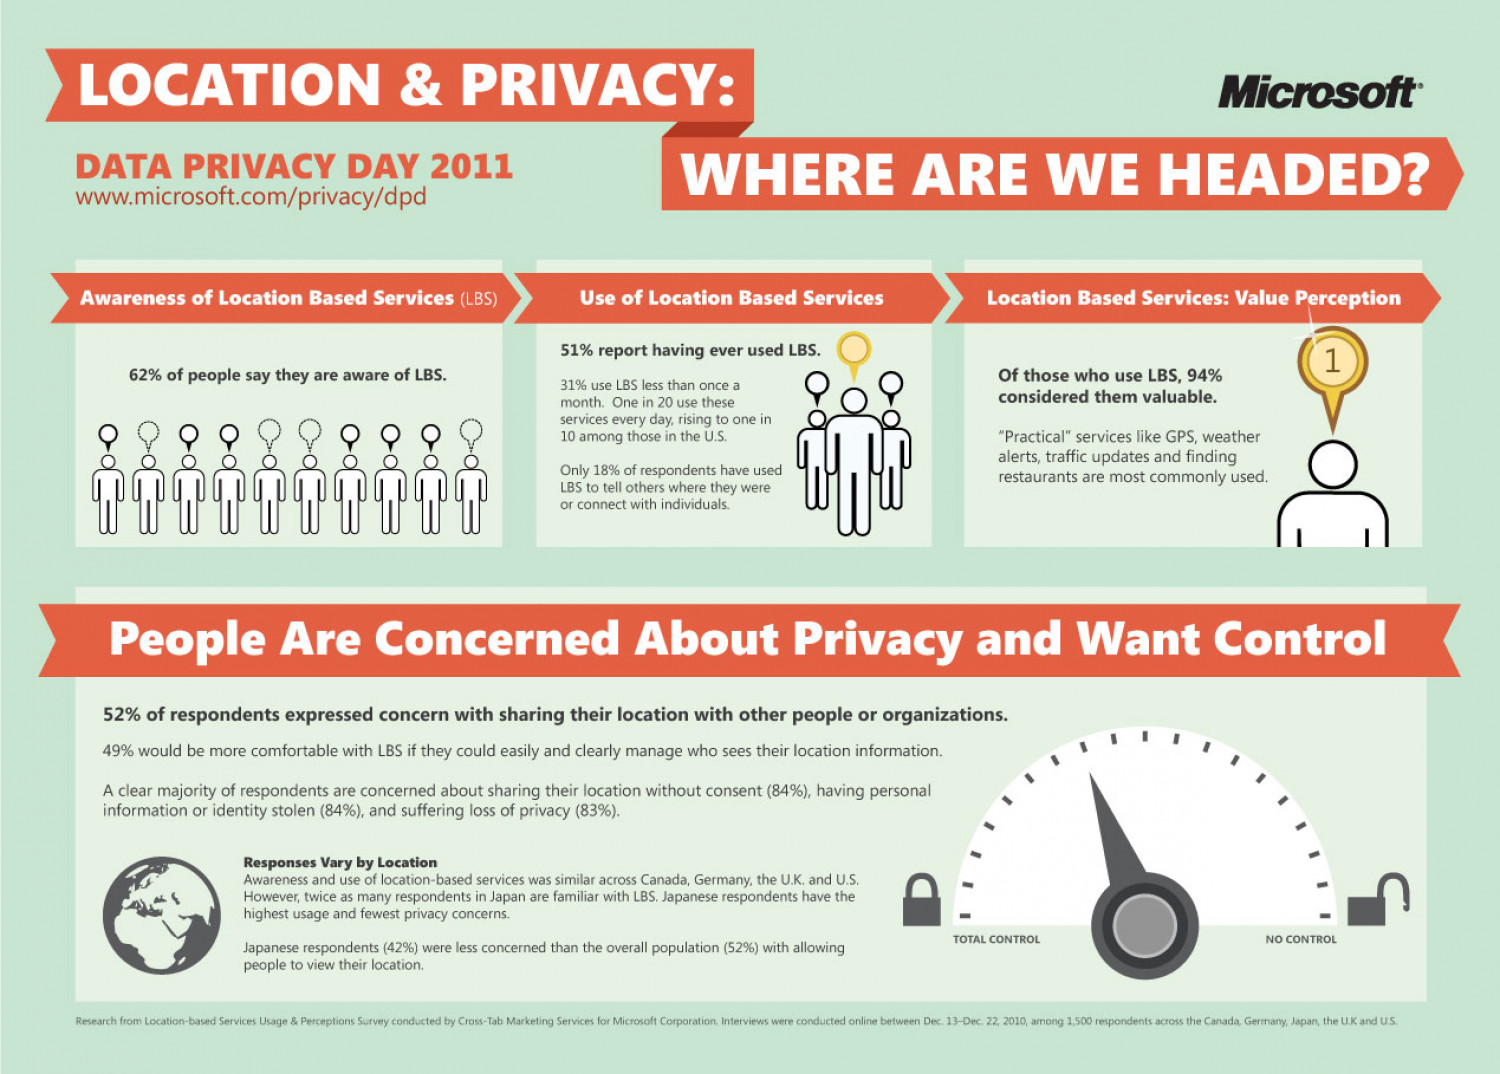 Location and Privacy: Where are we Headed? Infographic